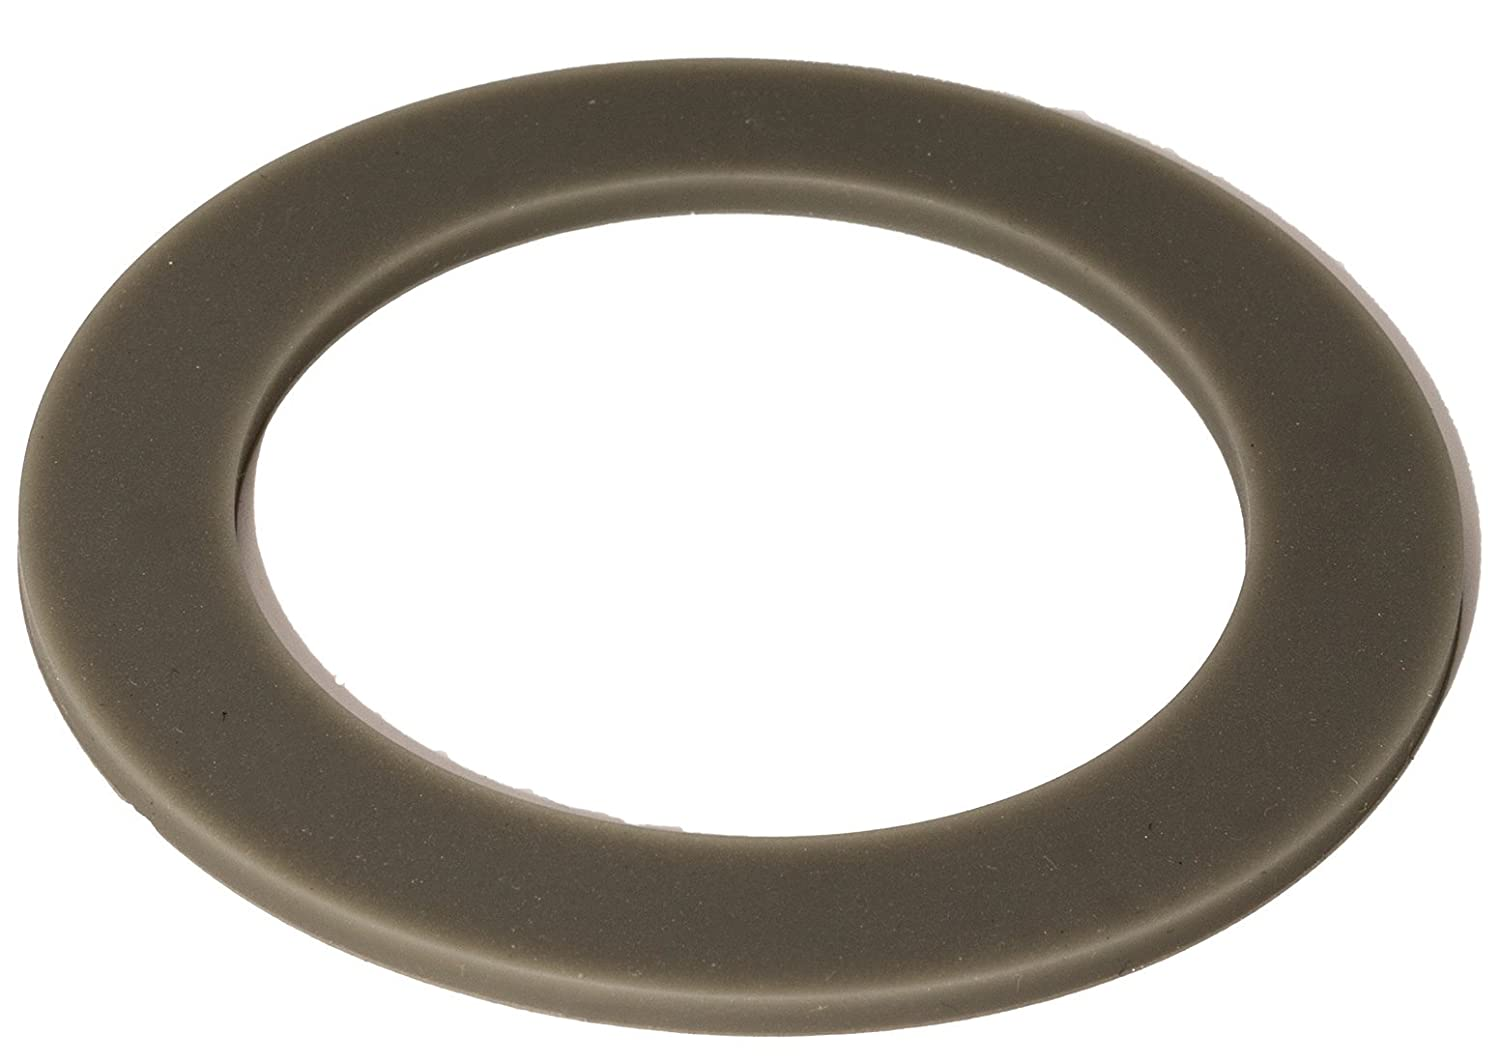 Replaces 908 Fits Hamilton Beach Commercial Blenders Blendin Blade and Gasket 909 Black 990035700